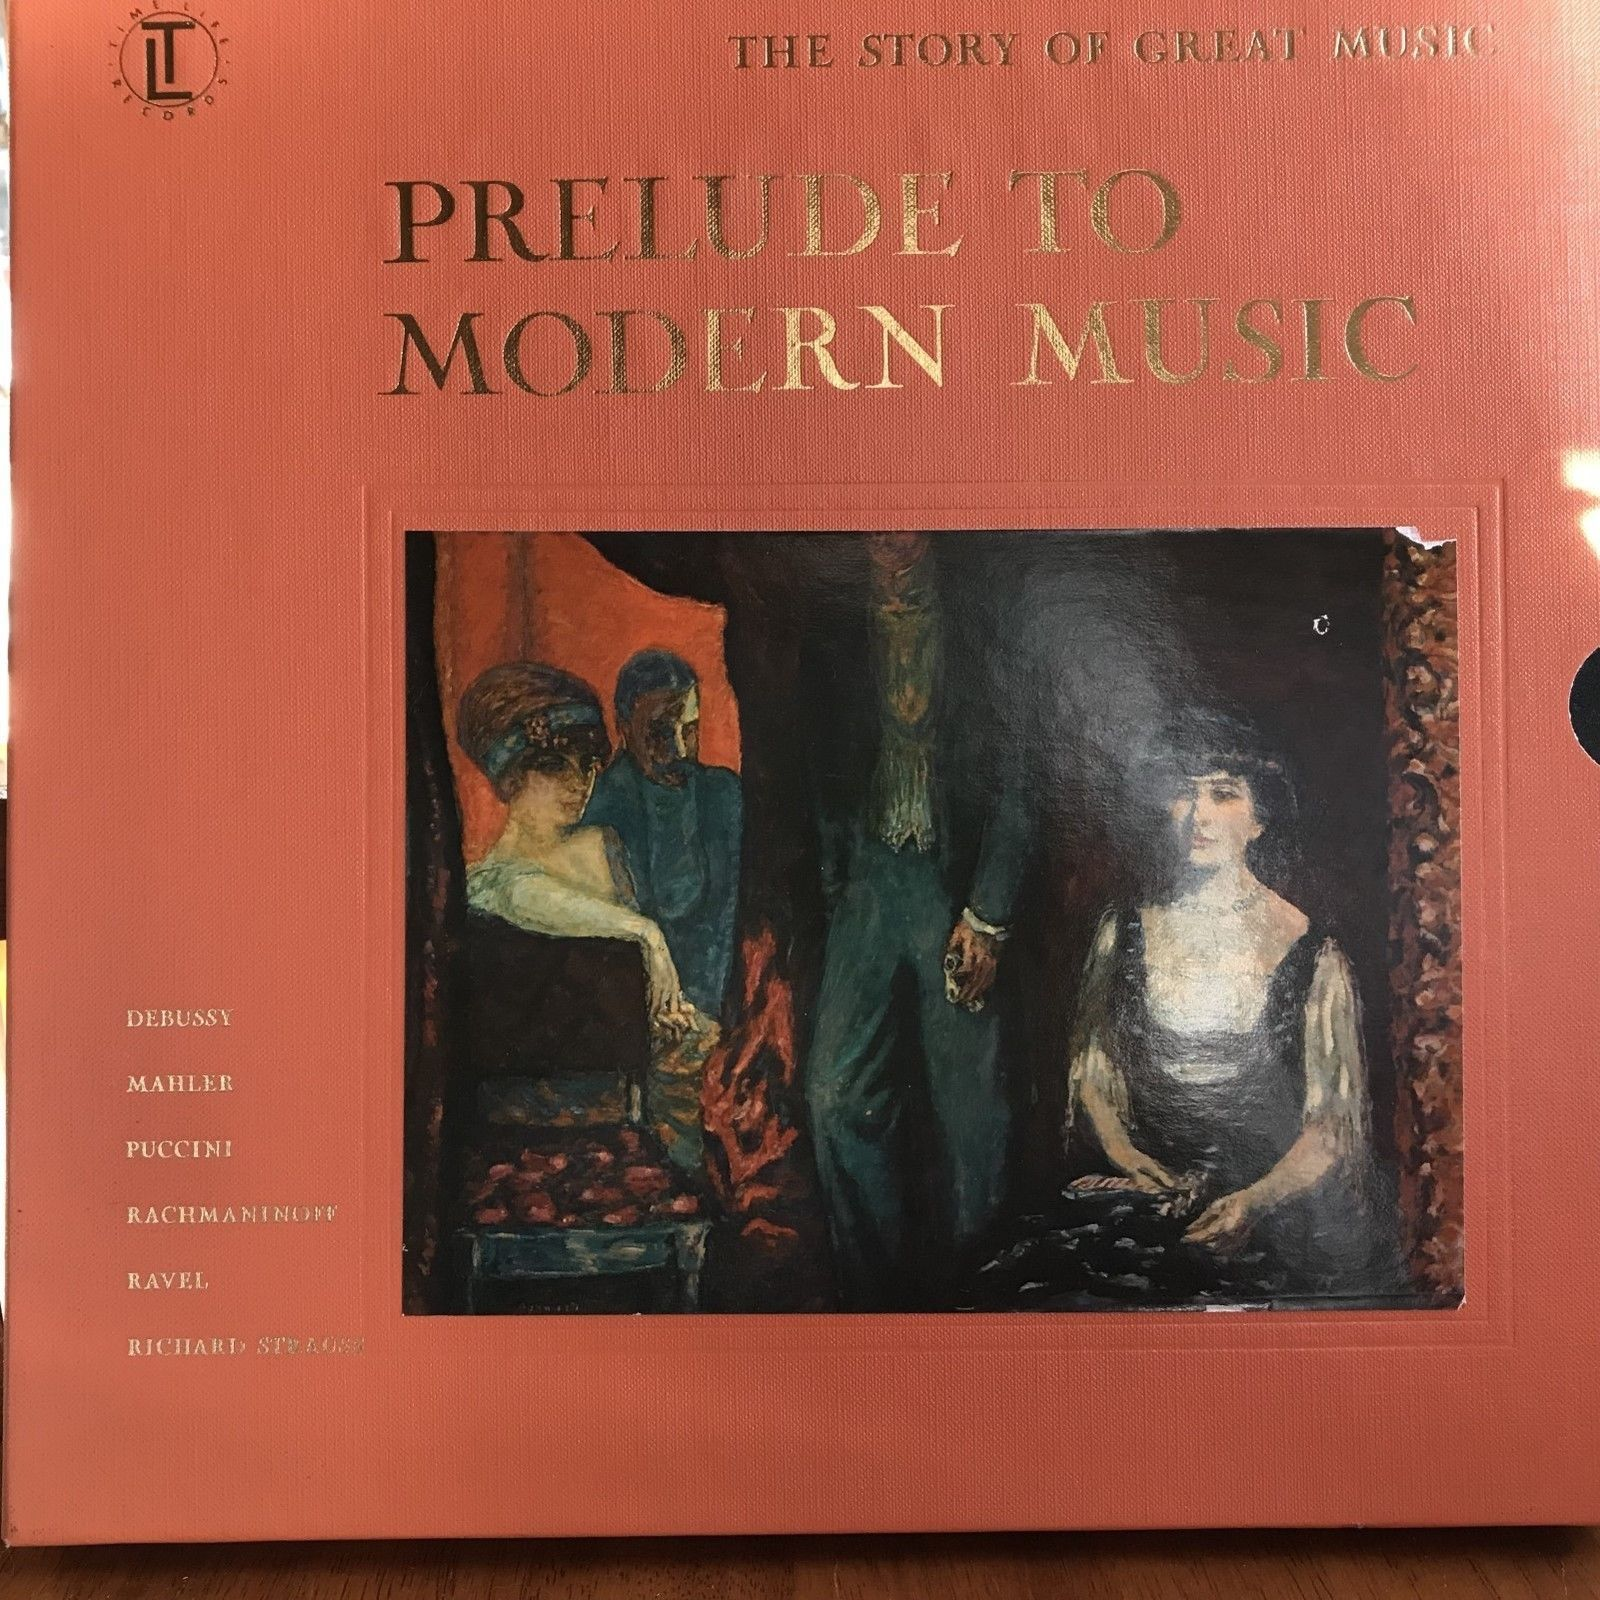 Primary image for Prelude Modern Music Time Life Story Great 4 Record Set book listening guide 147